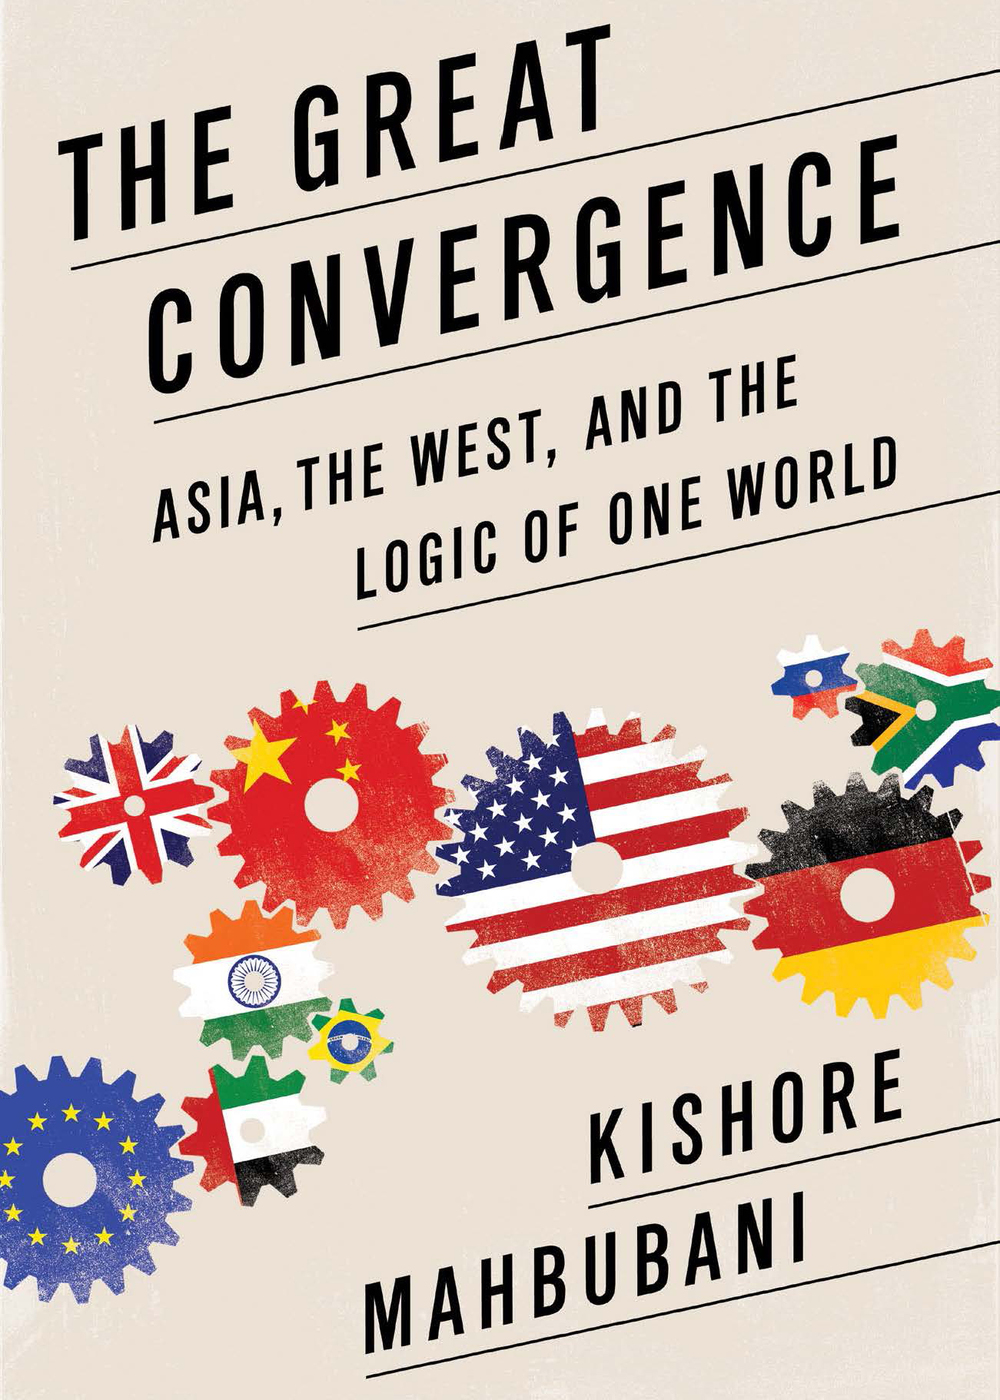 Mahbubani, Kishore - The Great Convergence.jpg